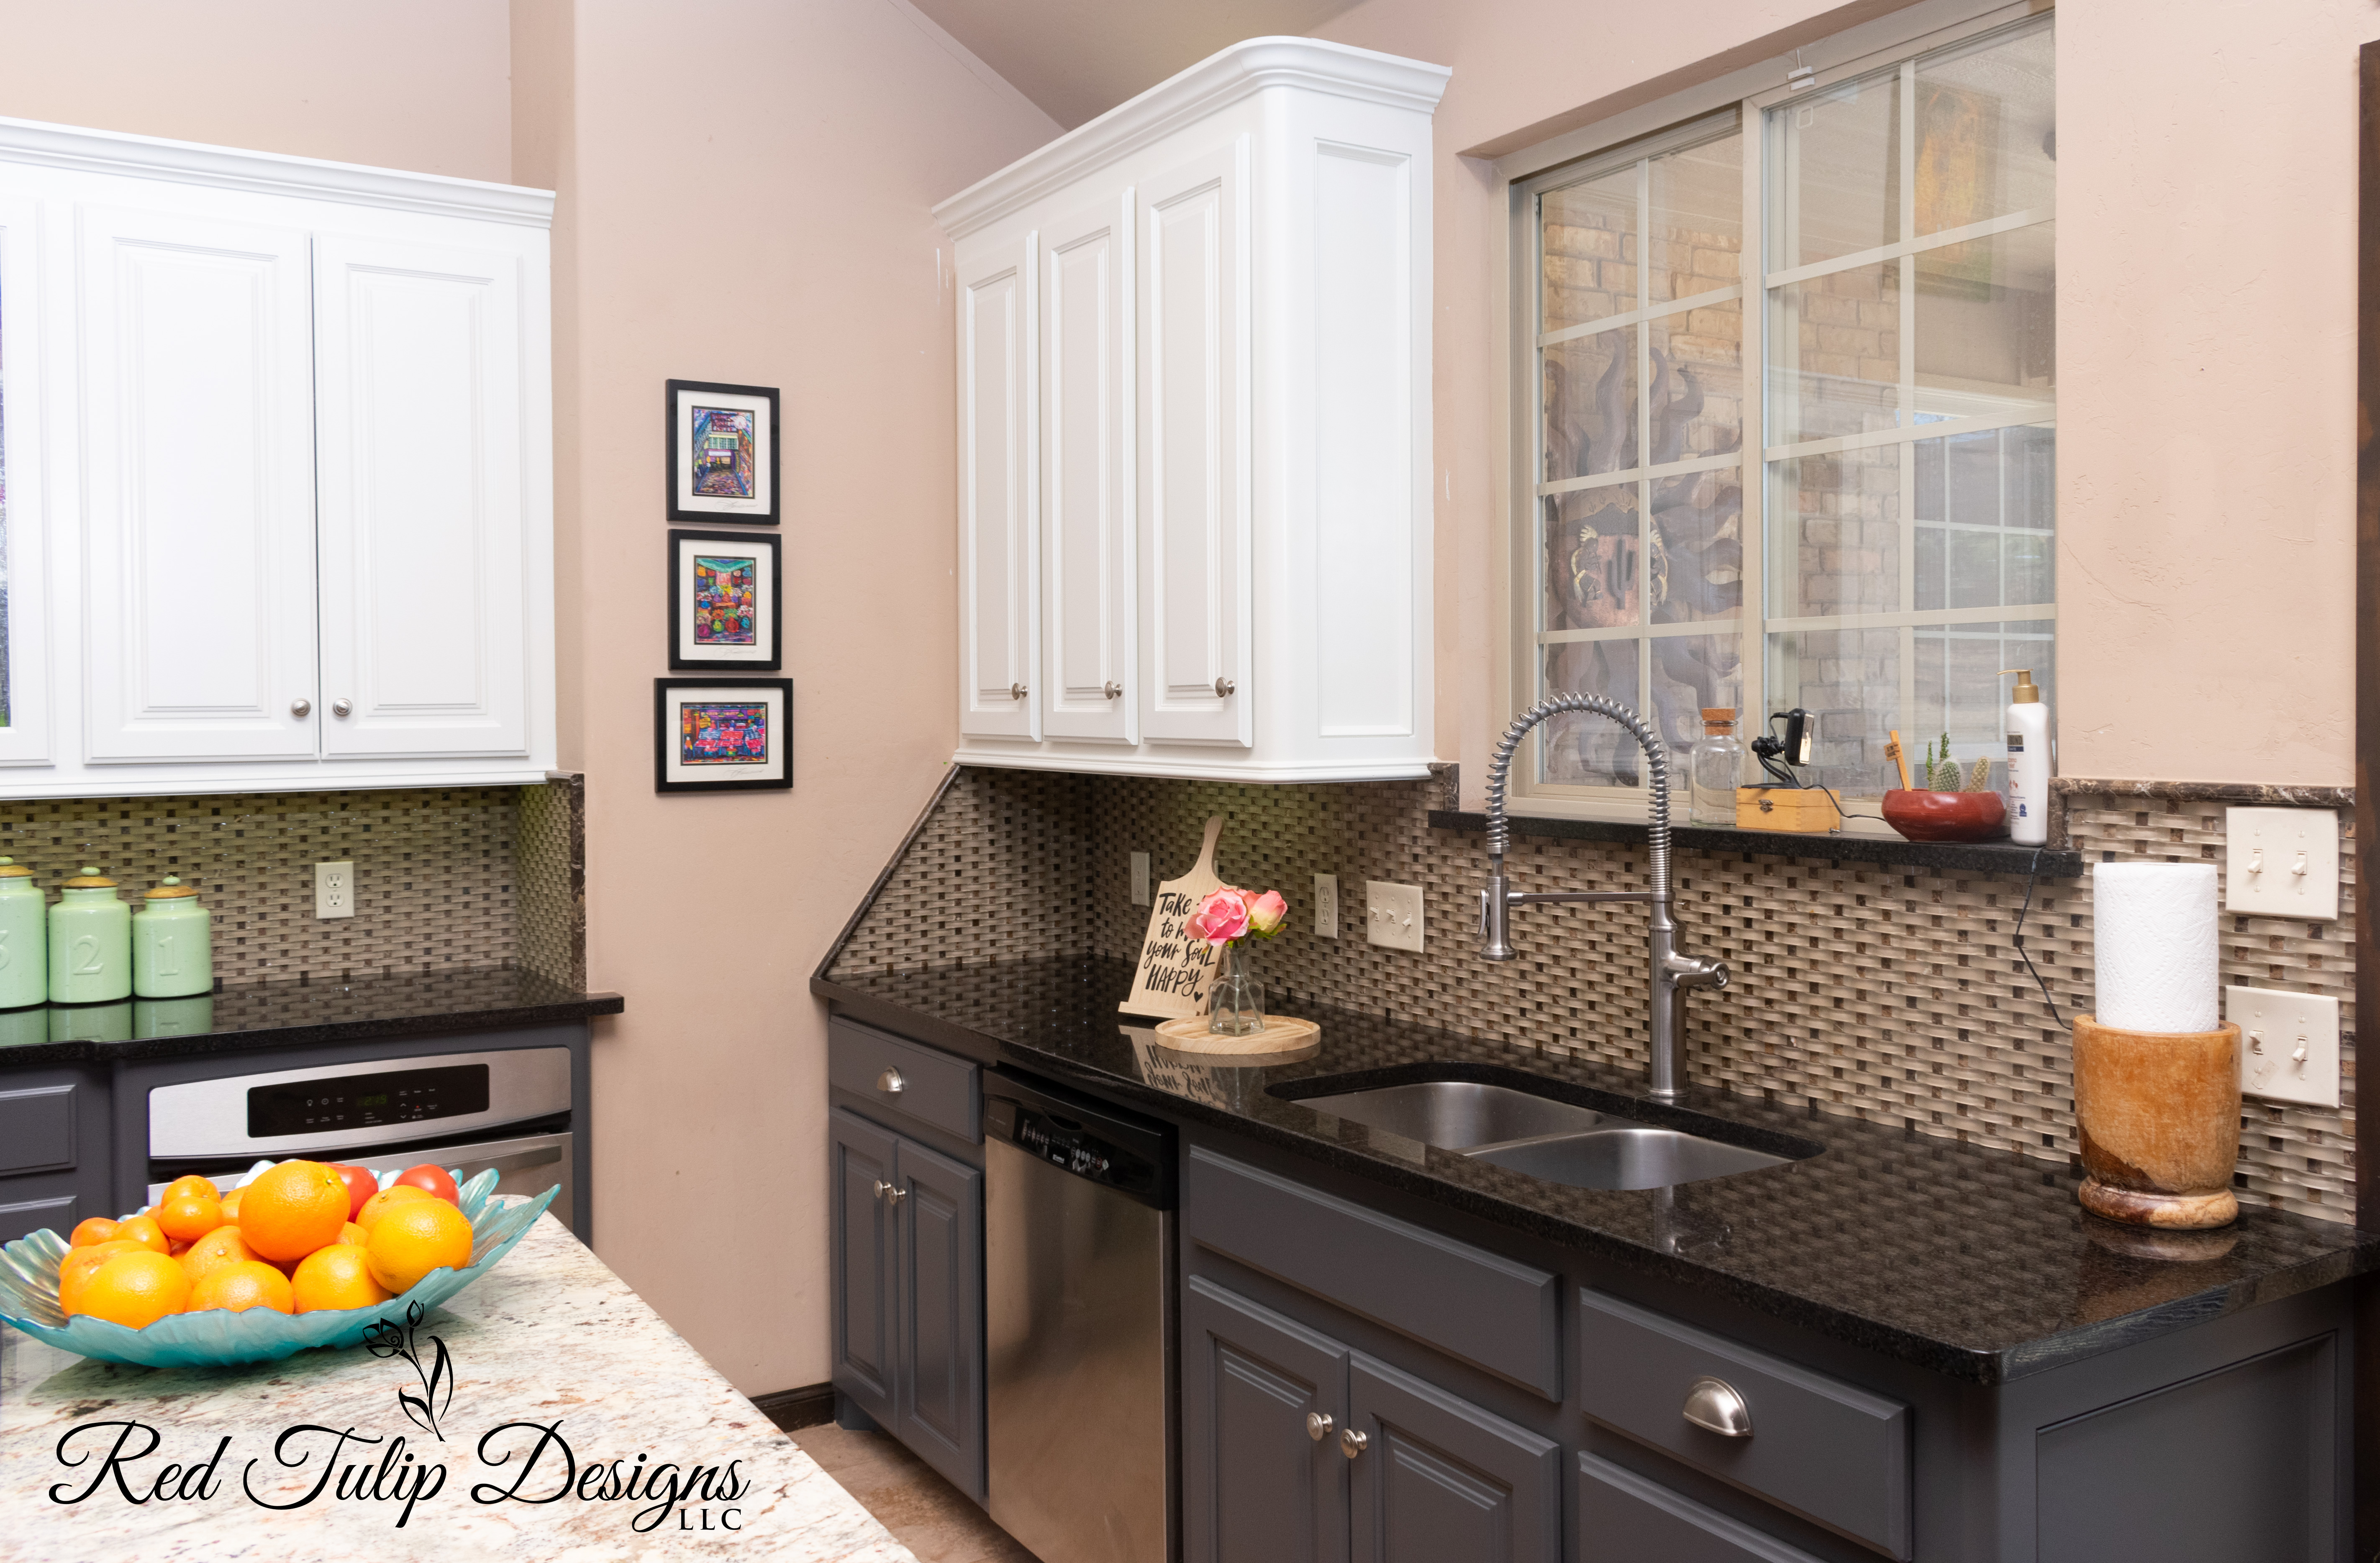 Alabaster_and_Peppercorn_Cabinets_Angled